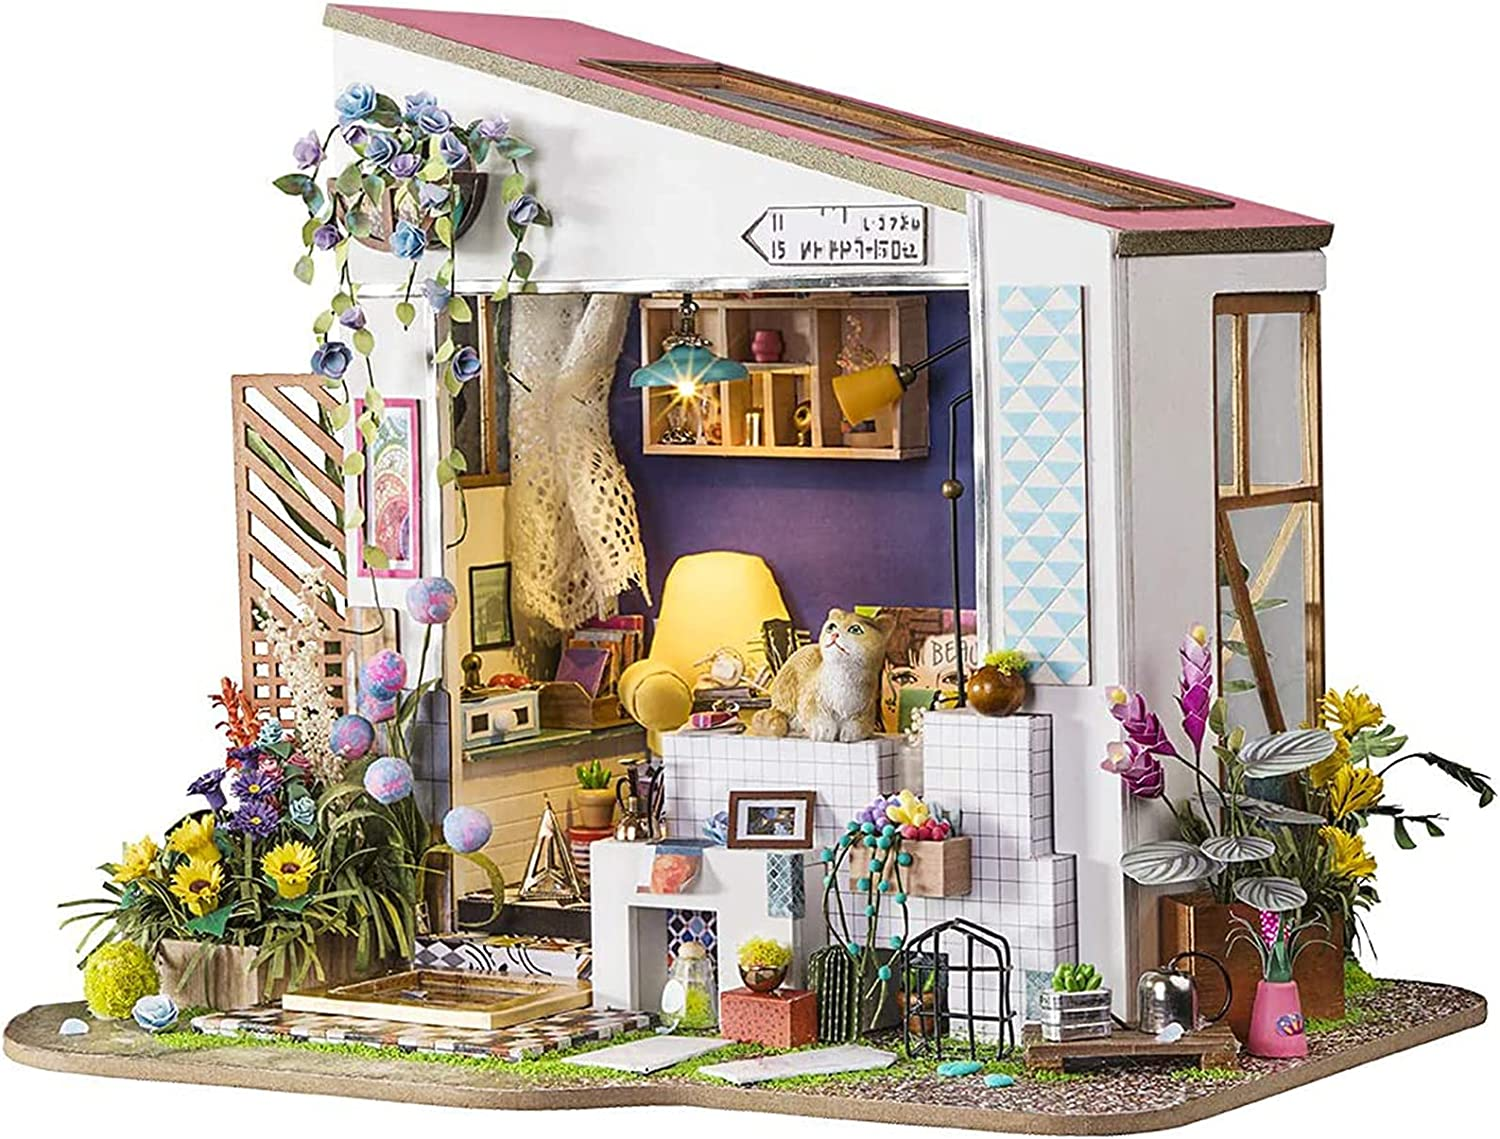 ALISALQ DIY 3D Wooden Miniature Toy Build Super special price Own House Handmad Your Challenge the lowest price of Japan